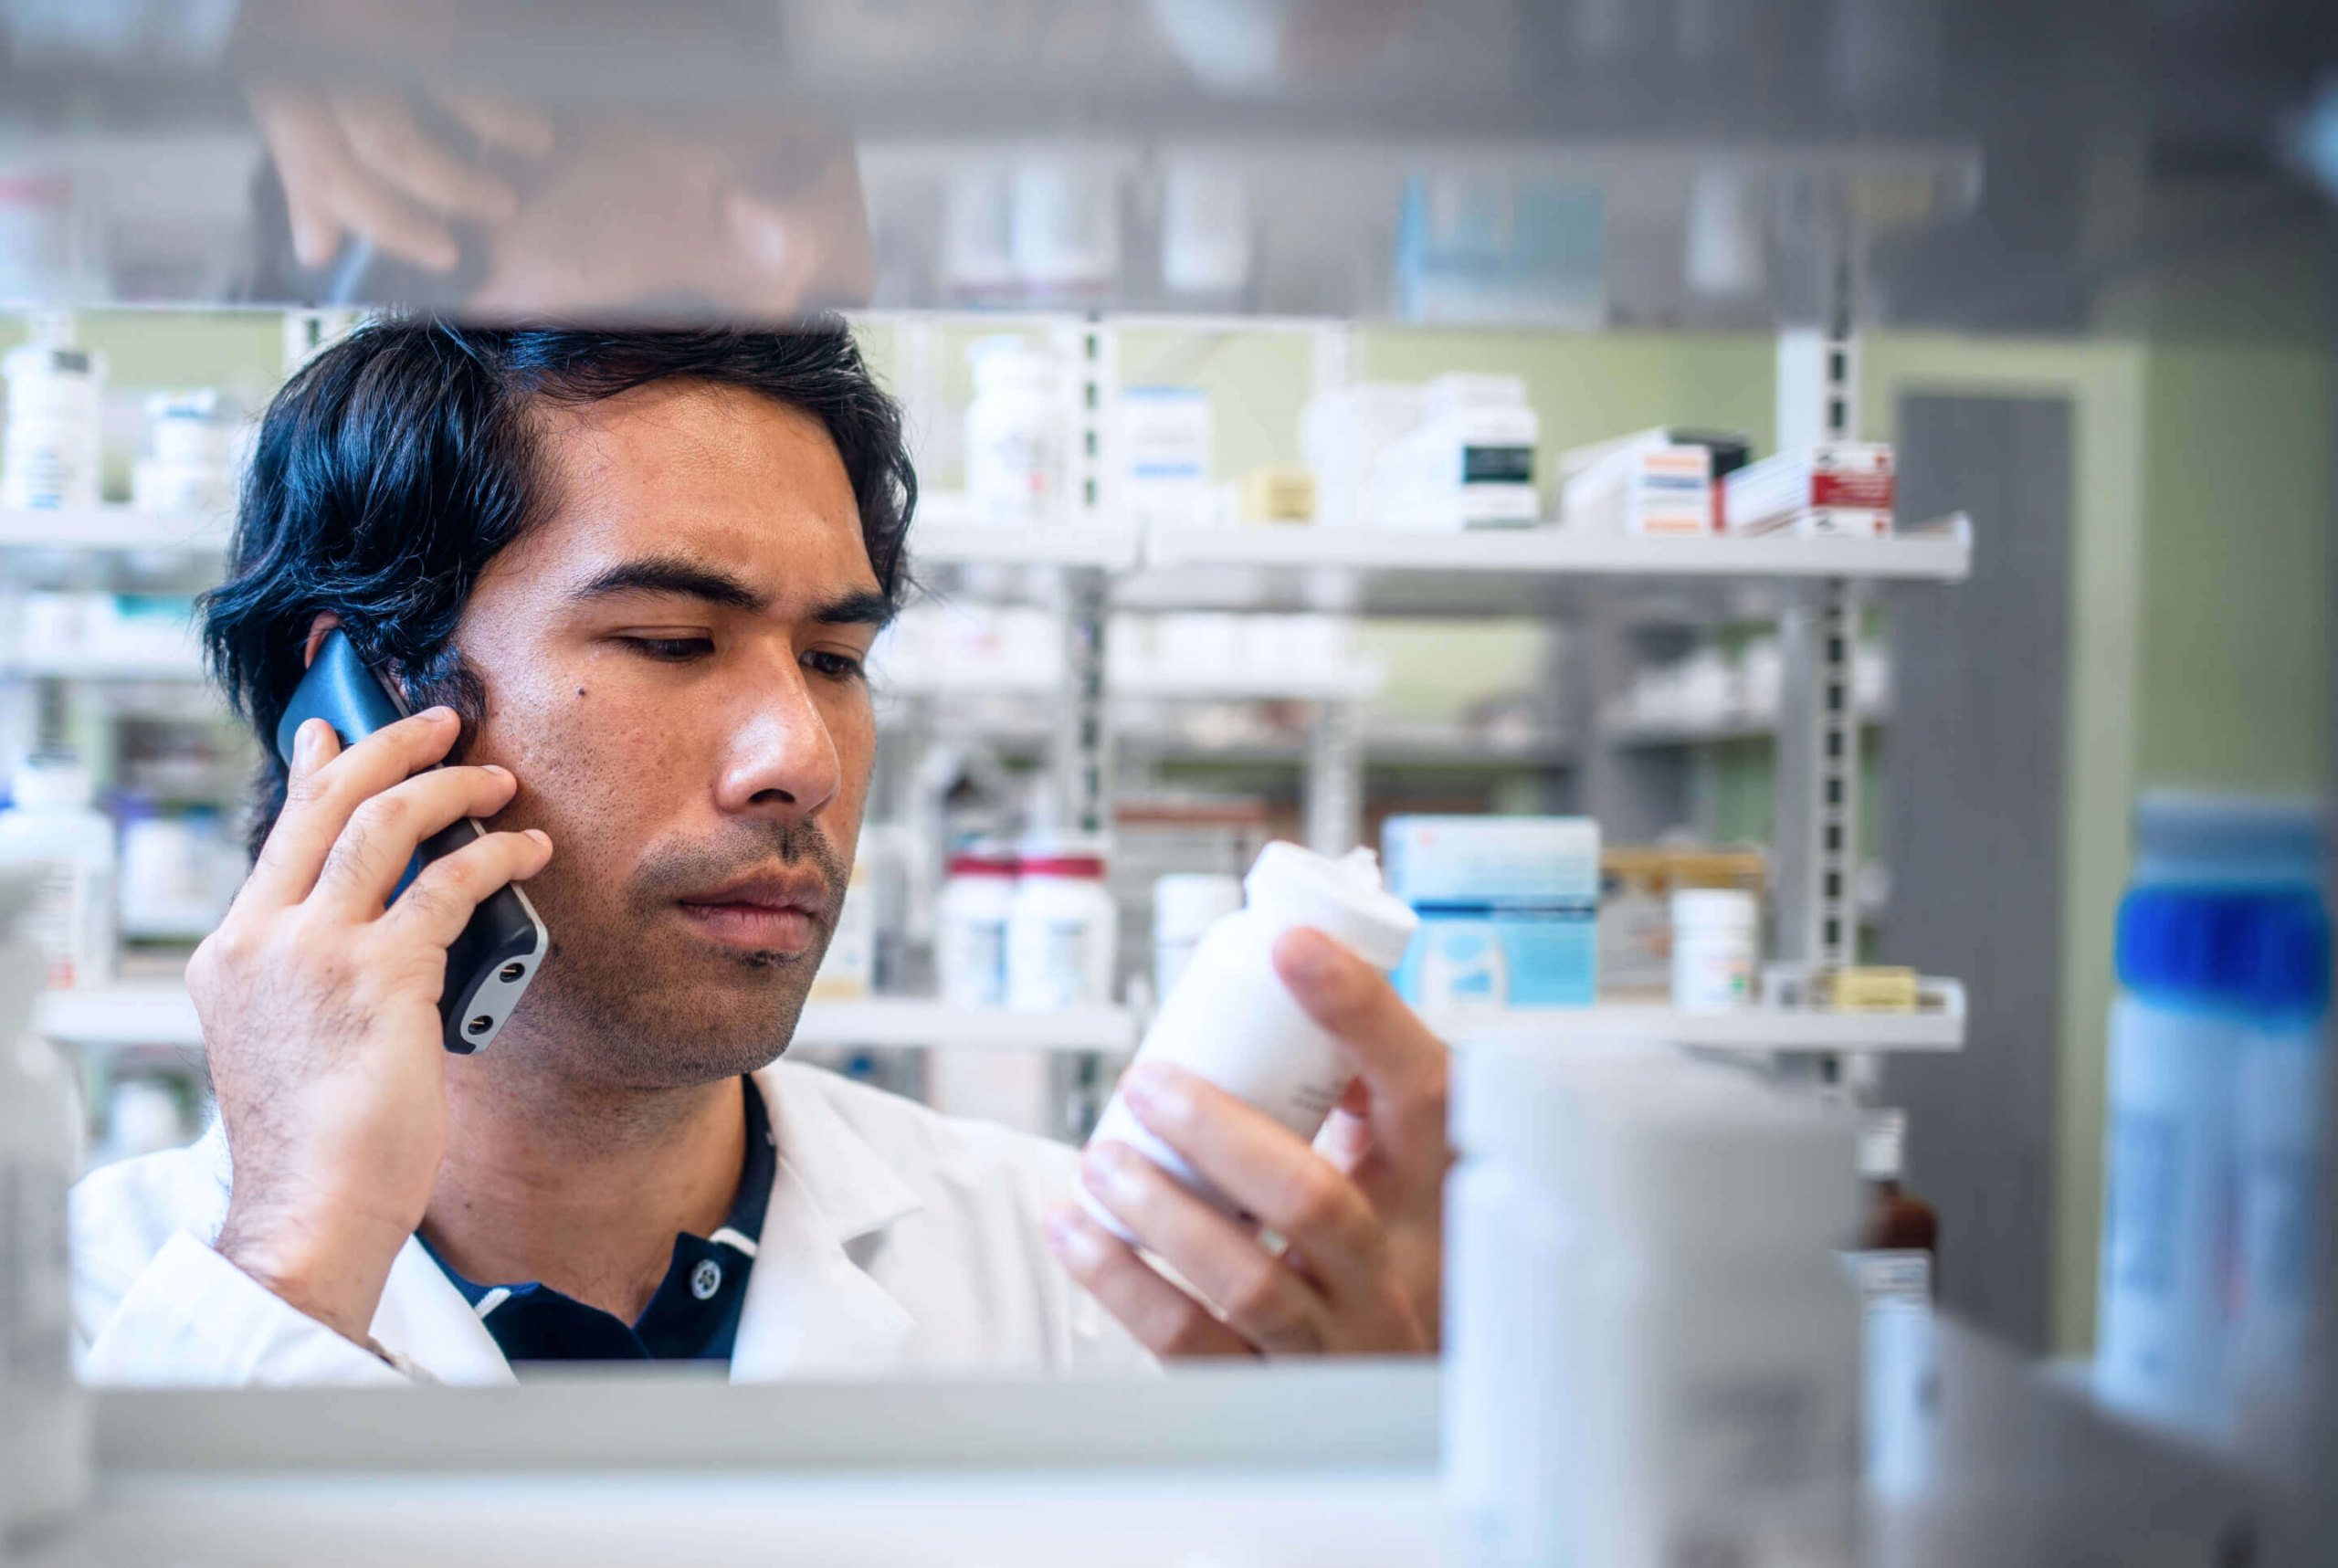 man on phone in pharmacy looking at prescription bottle